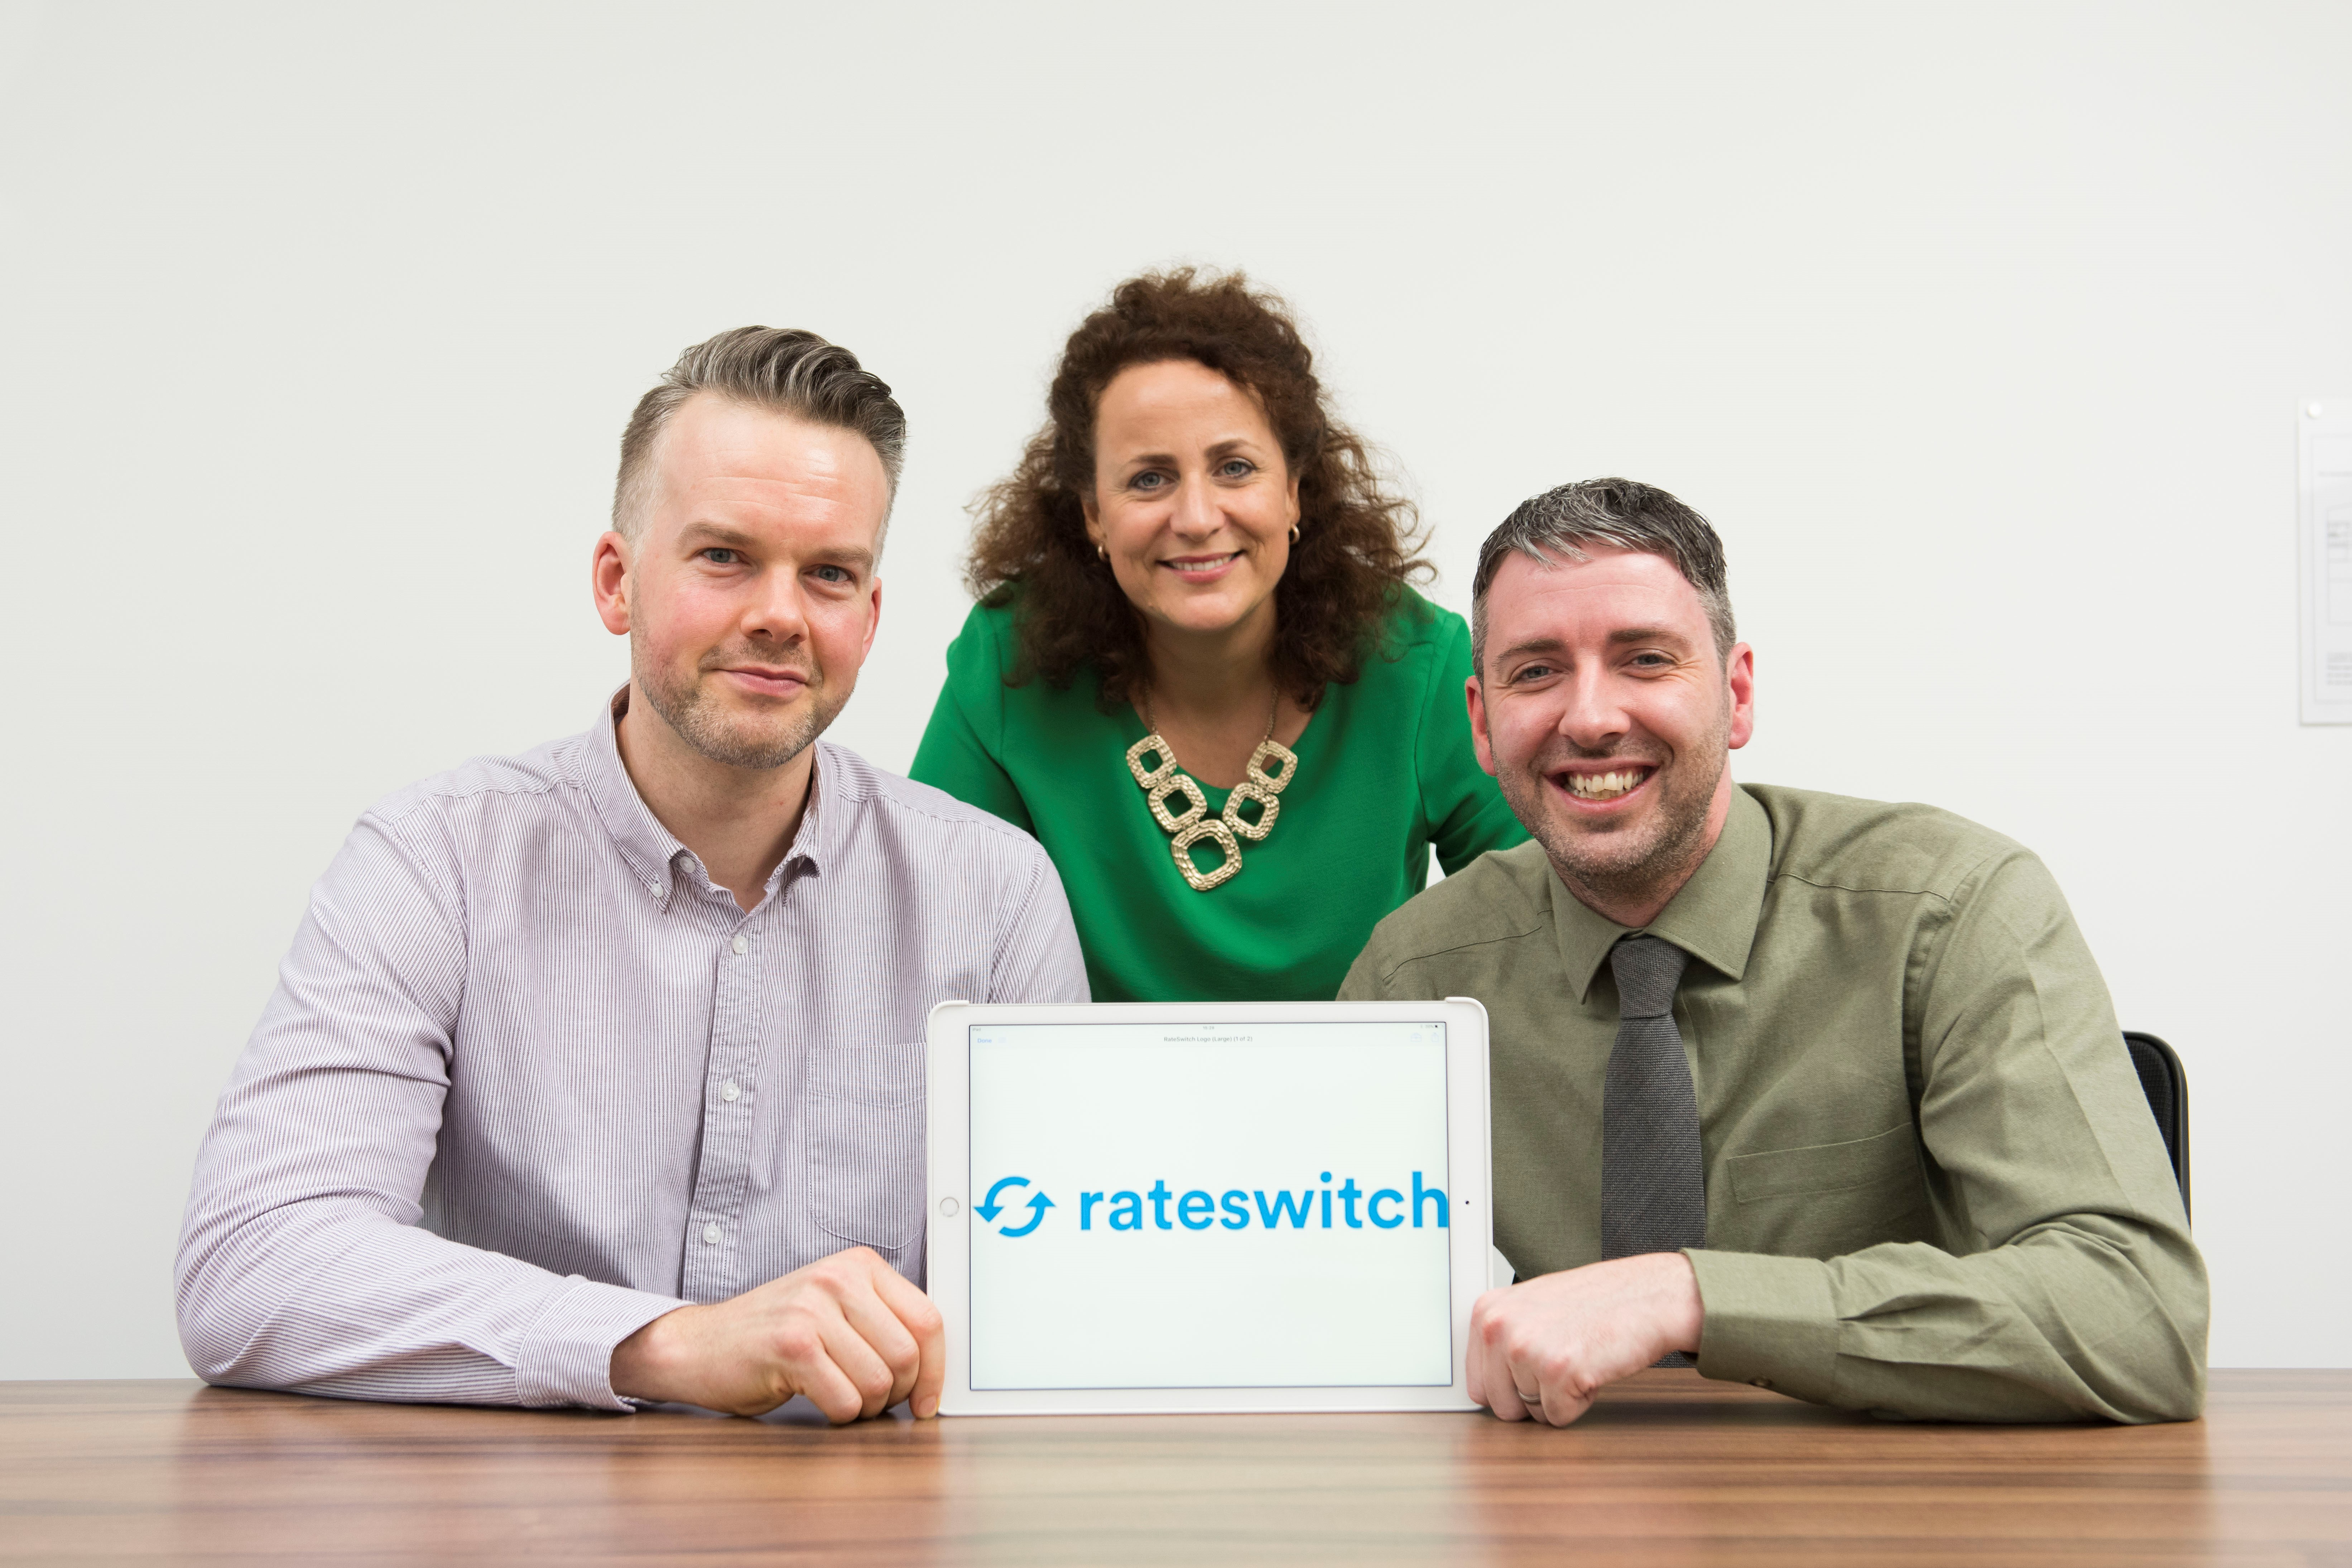 rateswitch team